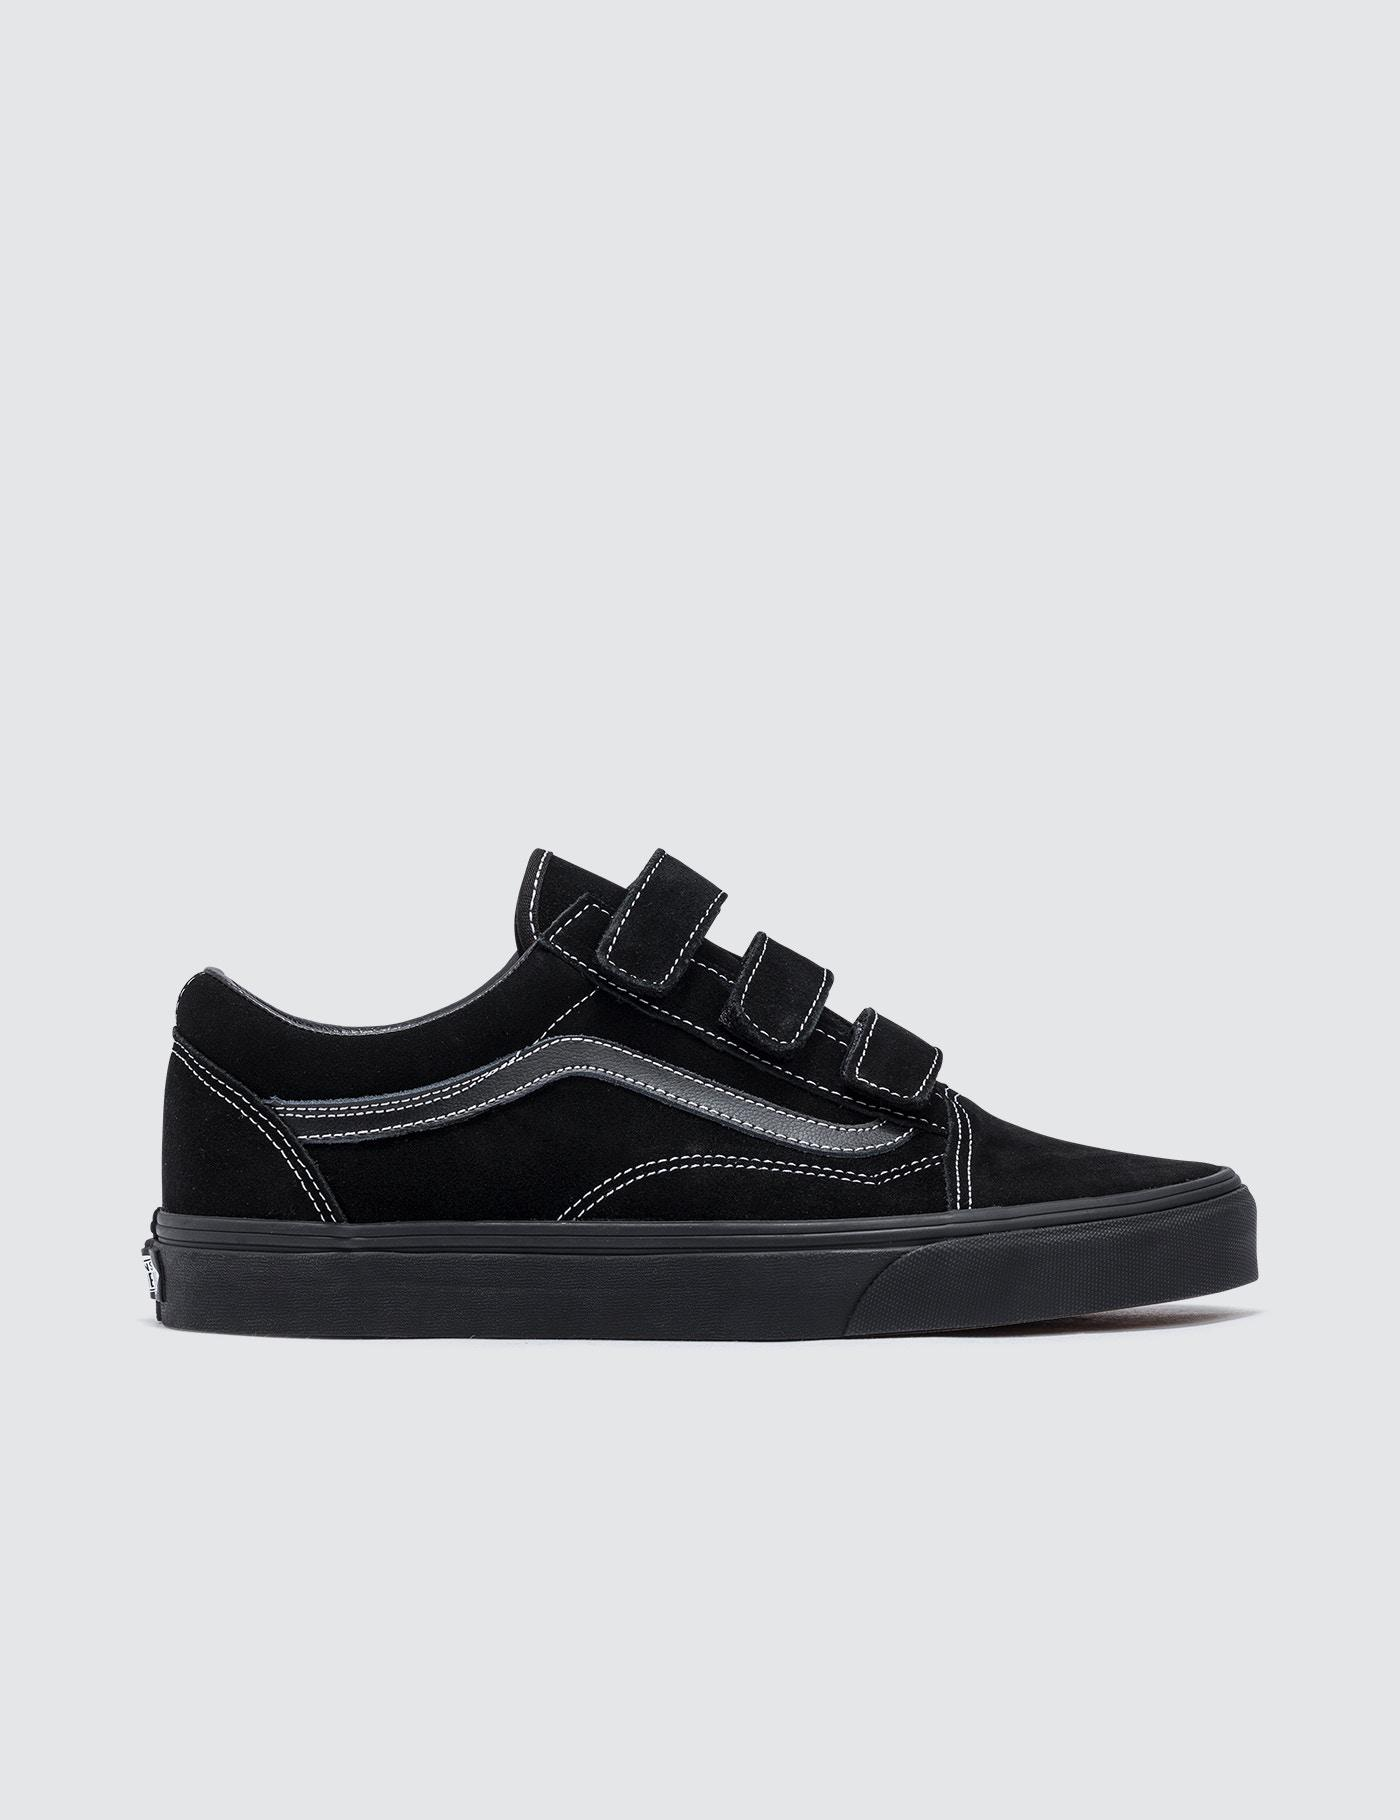 d7f30bc5e43 Gallery. Previously sold at  HBX · Men s Vans Old Skool ...